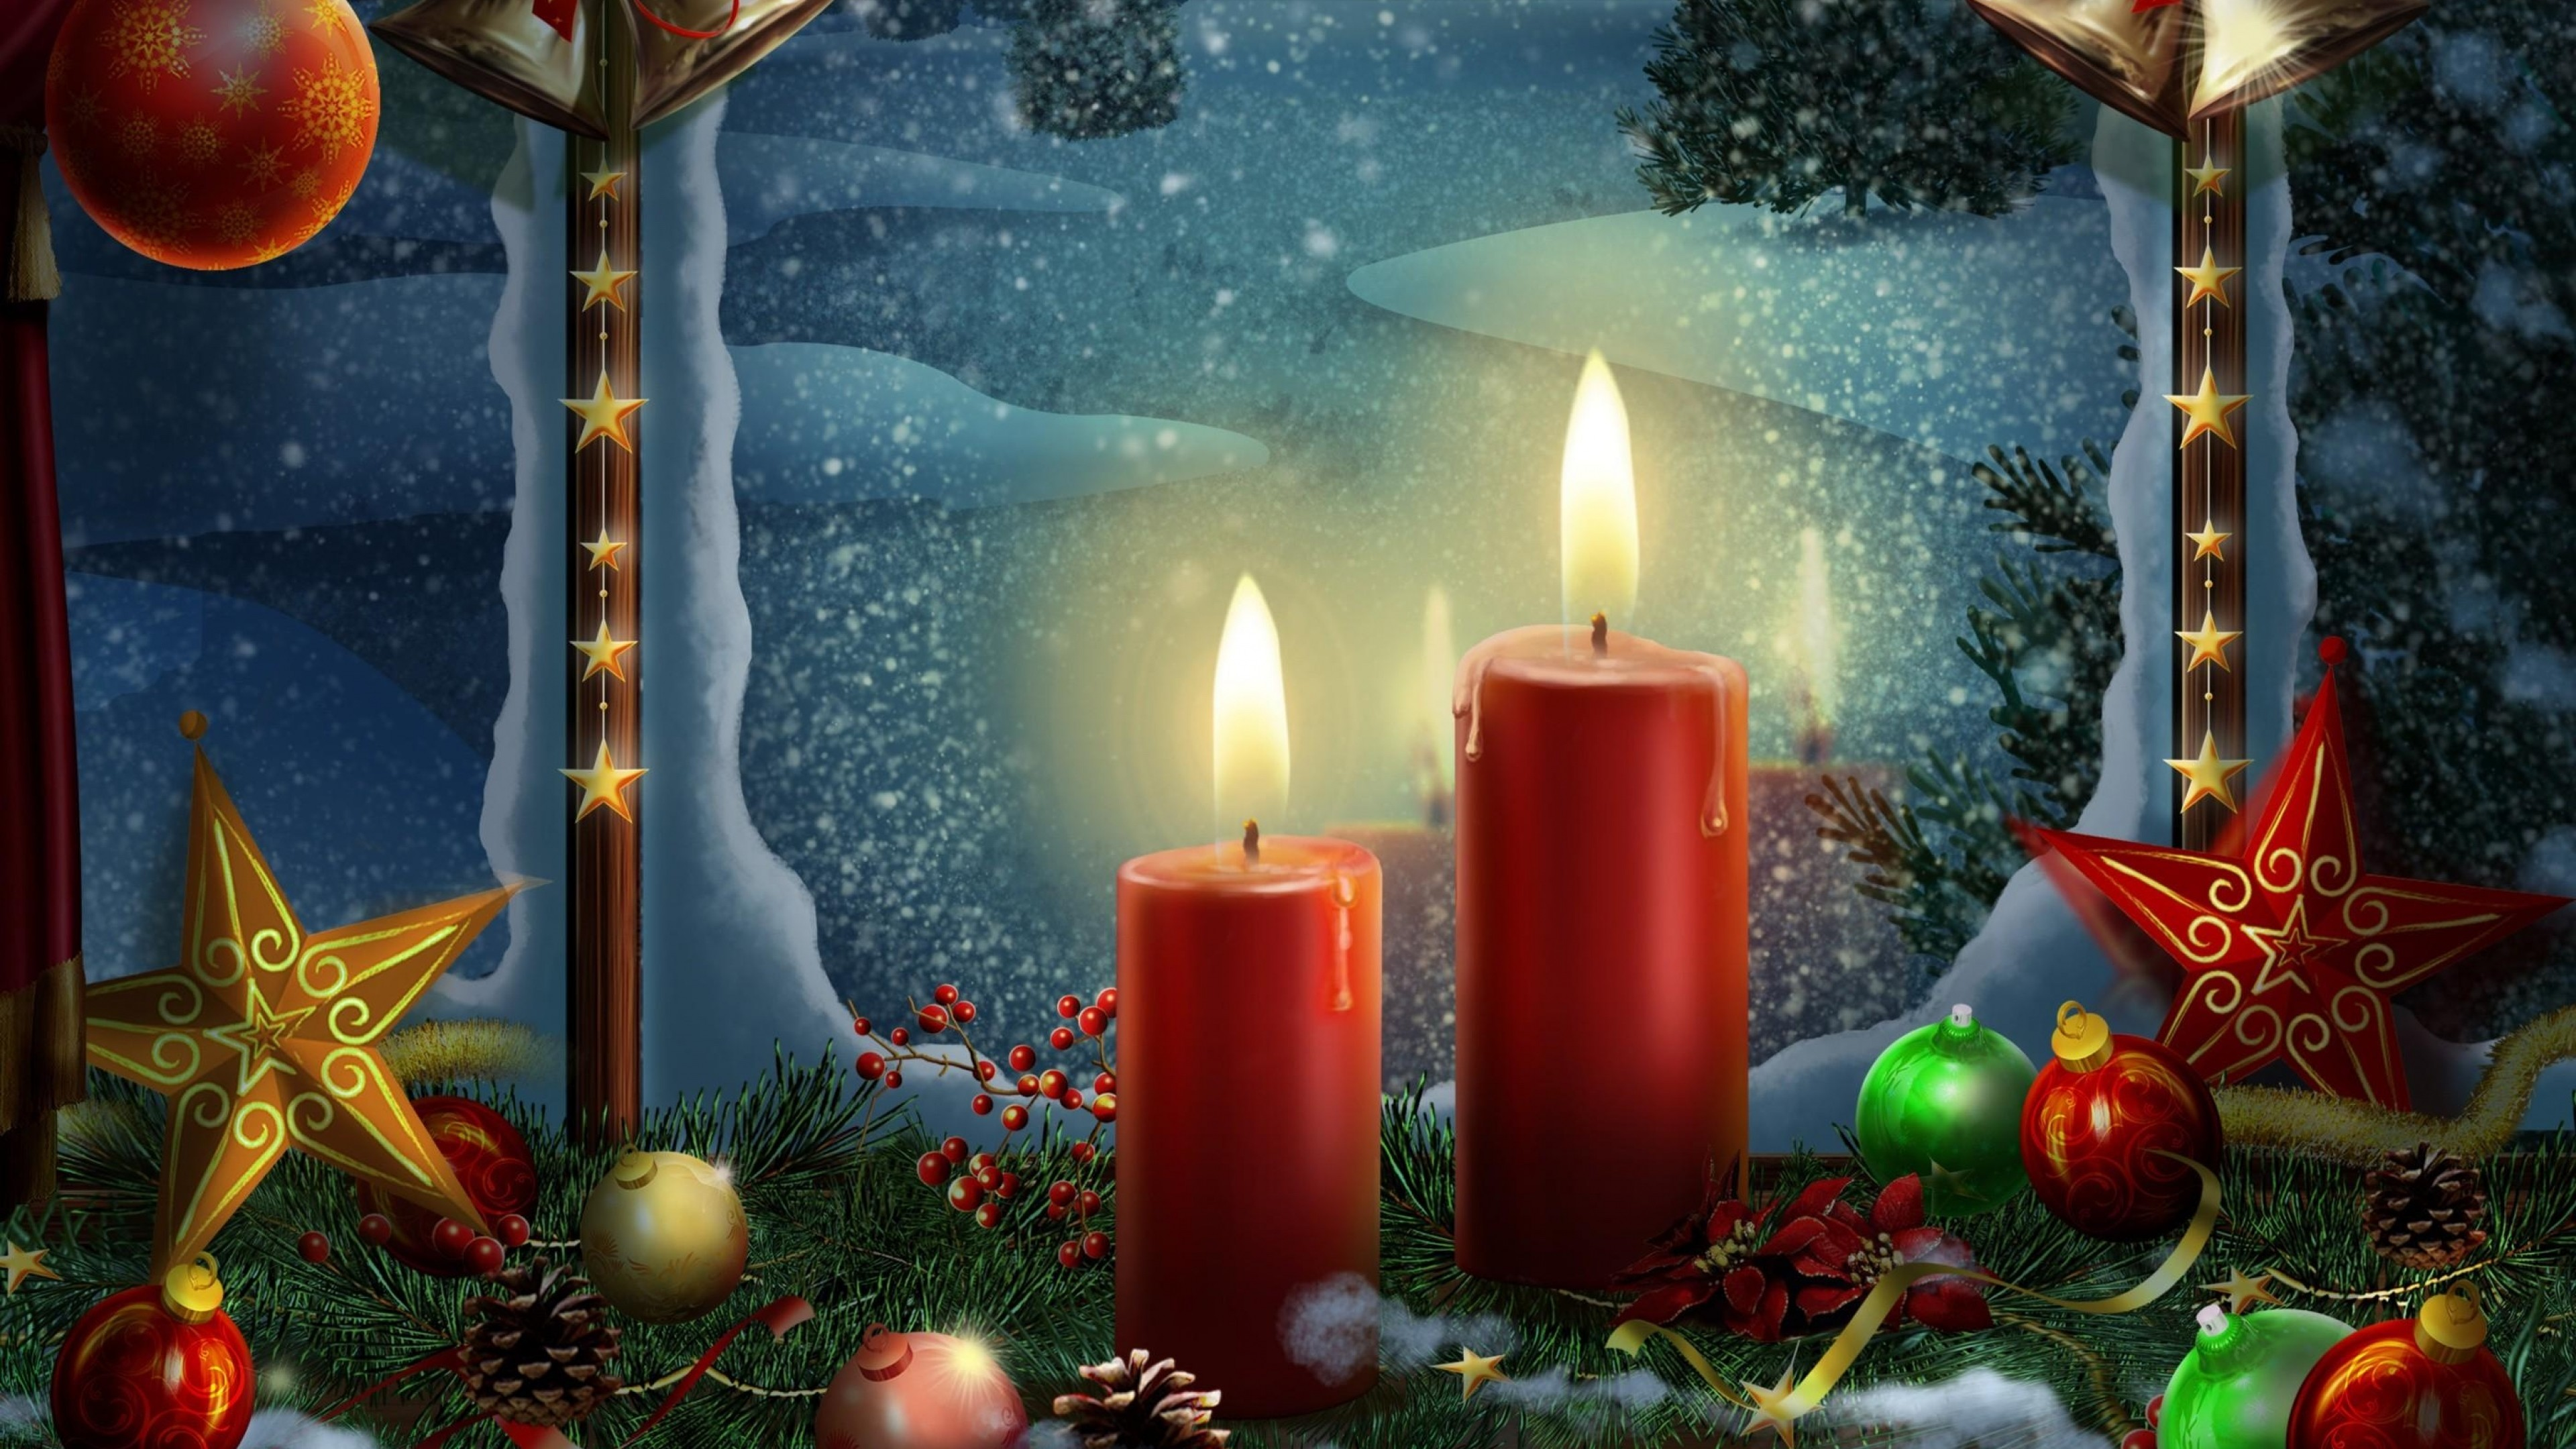 … Background 4K Ultra HD. Wallpaper new year, holiday candles,  postcards, toys, stars, christmas